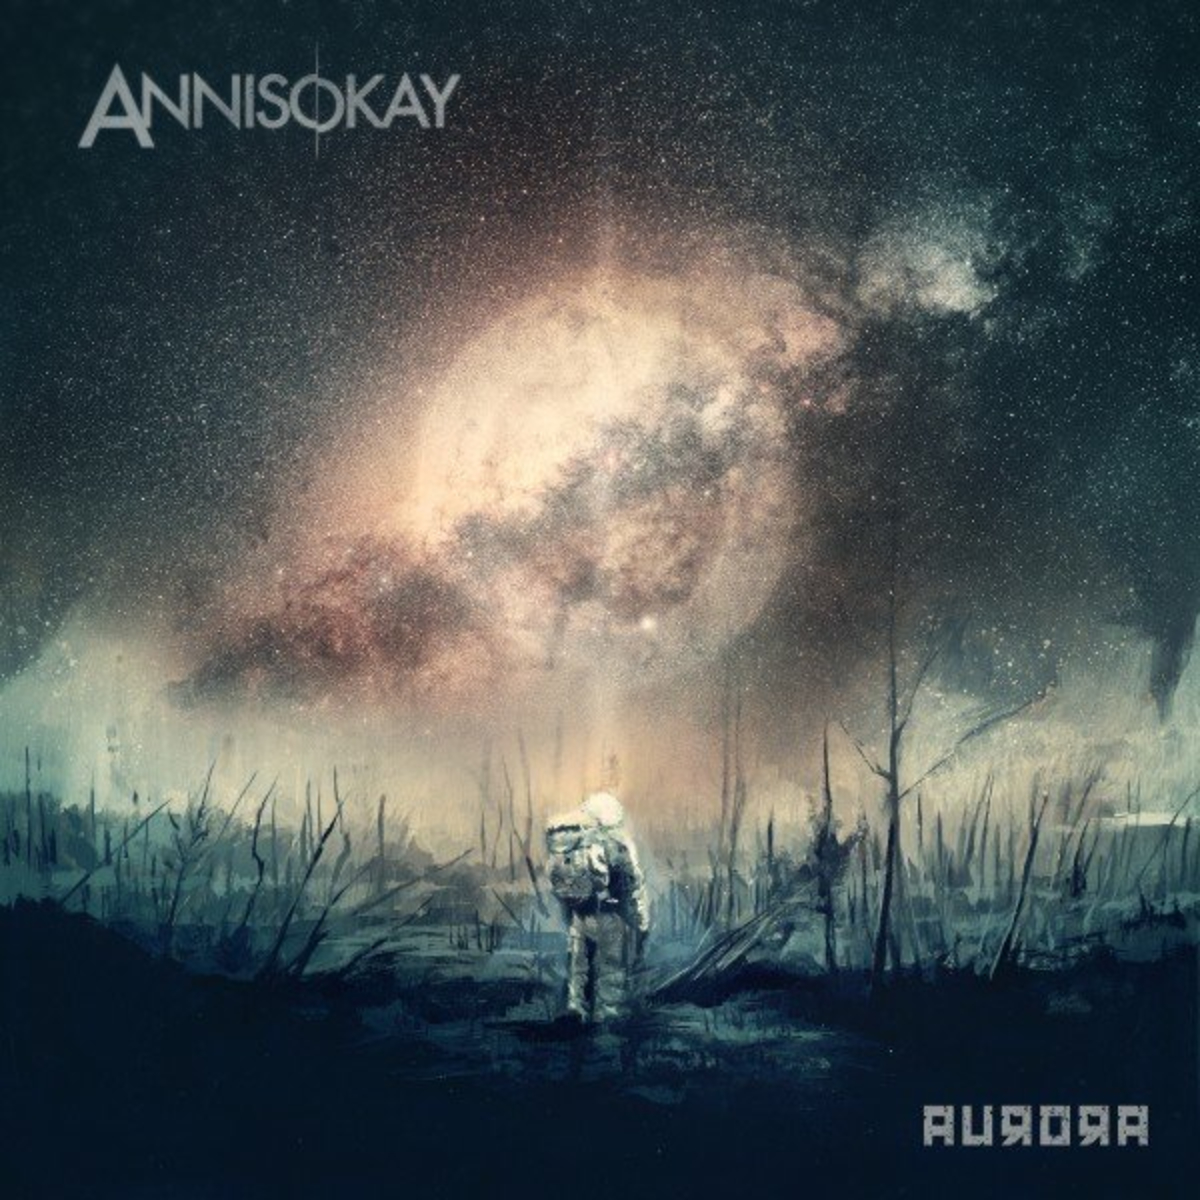 Annisokay - The Cocaines Got Your Tongue [single] (2021)